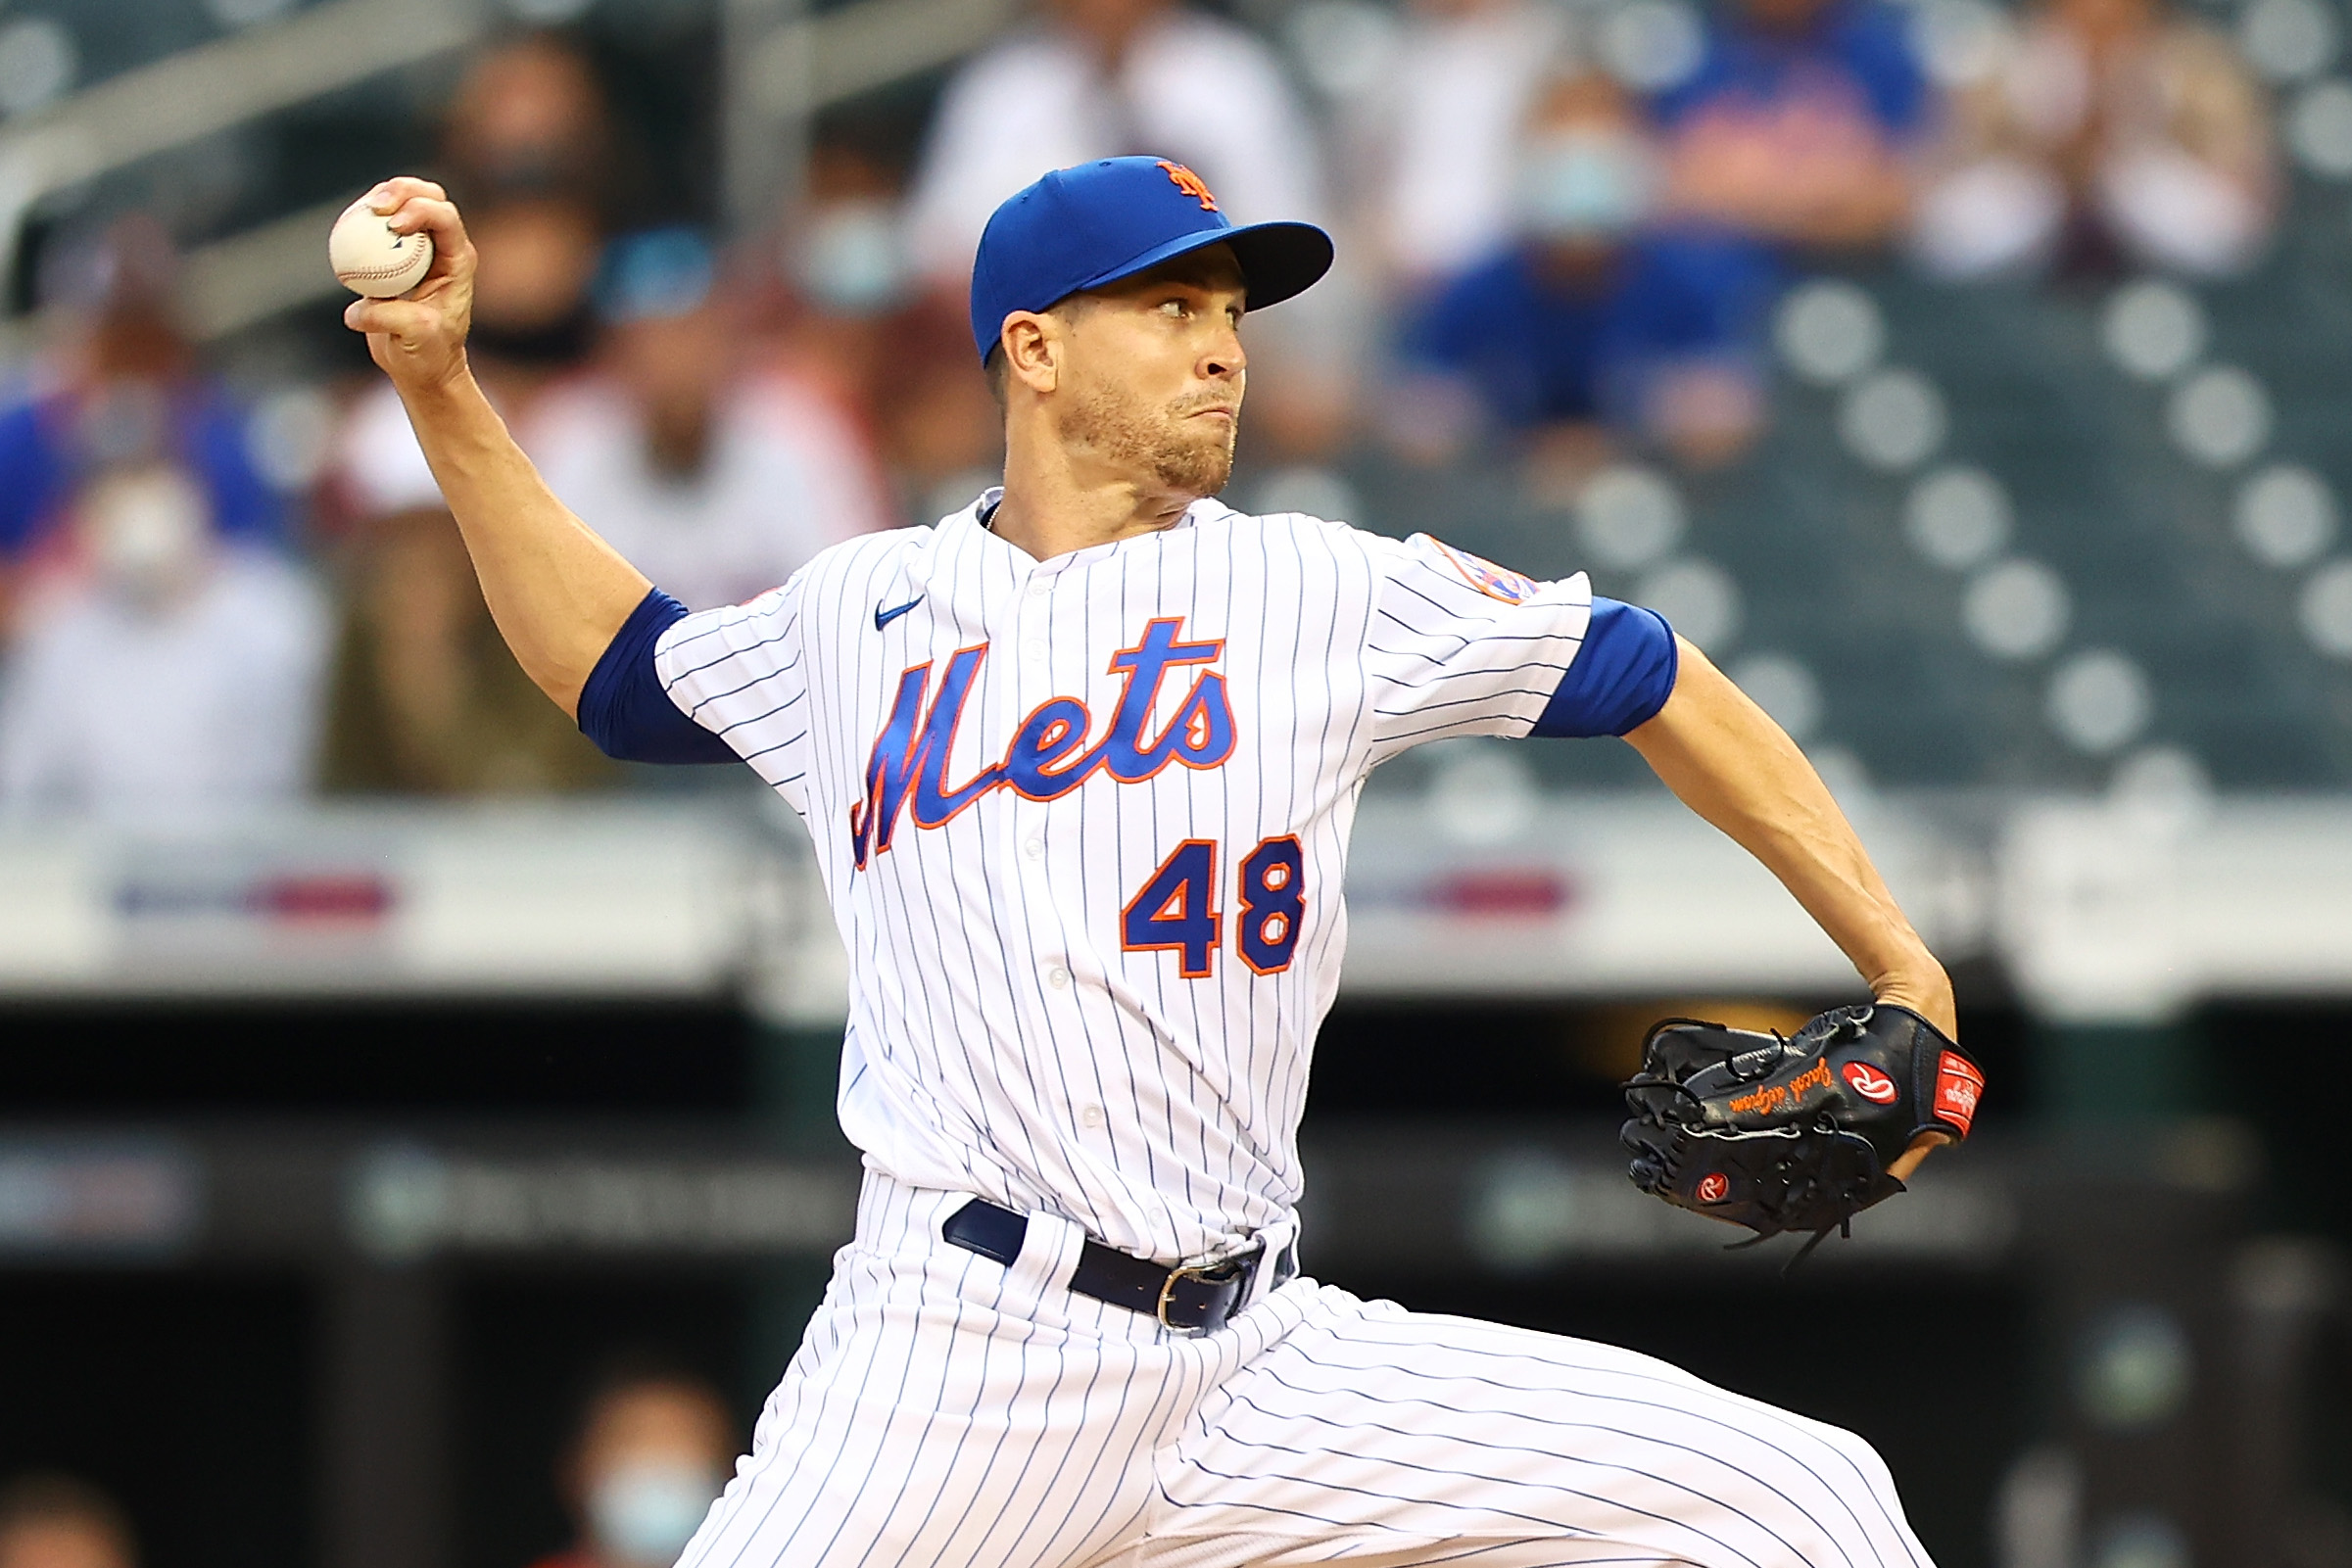 Mets ace Jacob deGrom sidelined with lat inflammation; avoids injured list for now